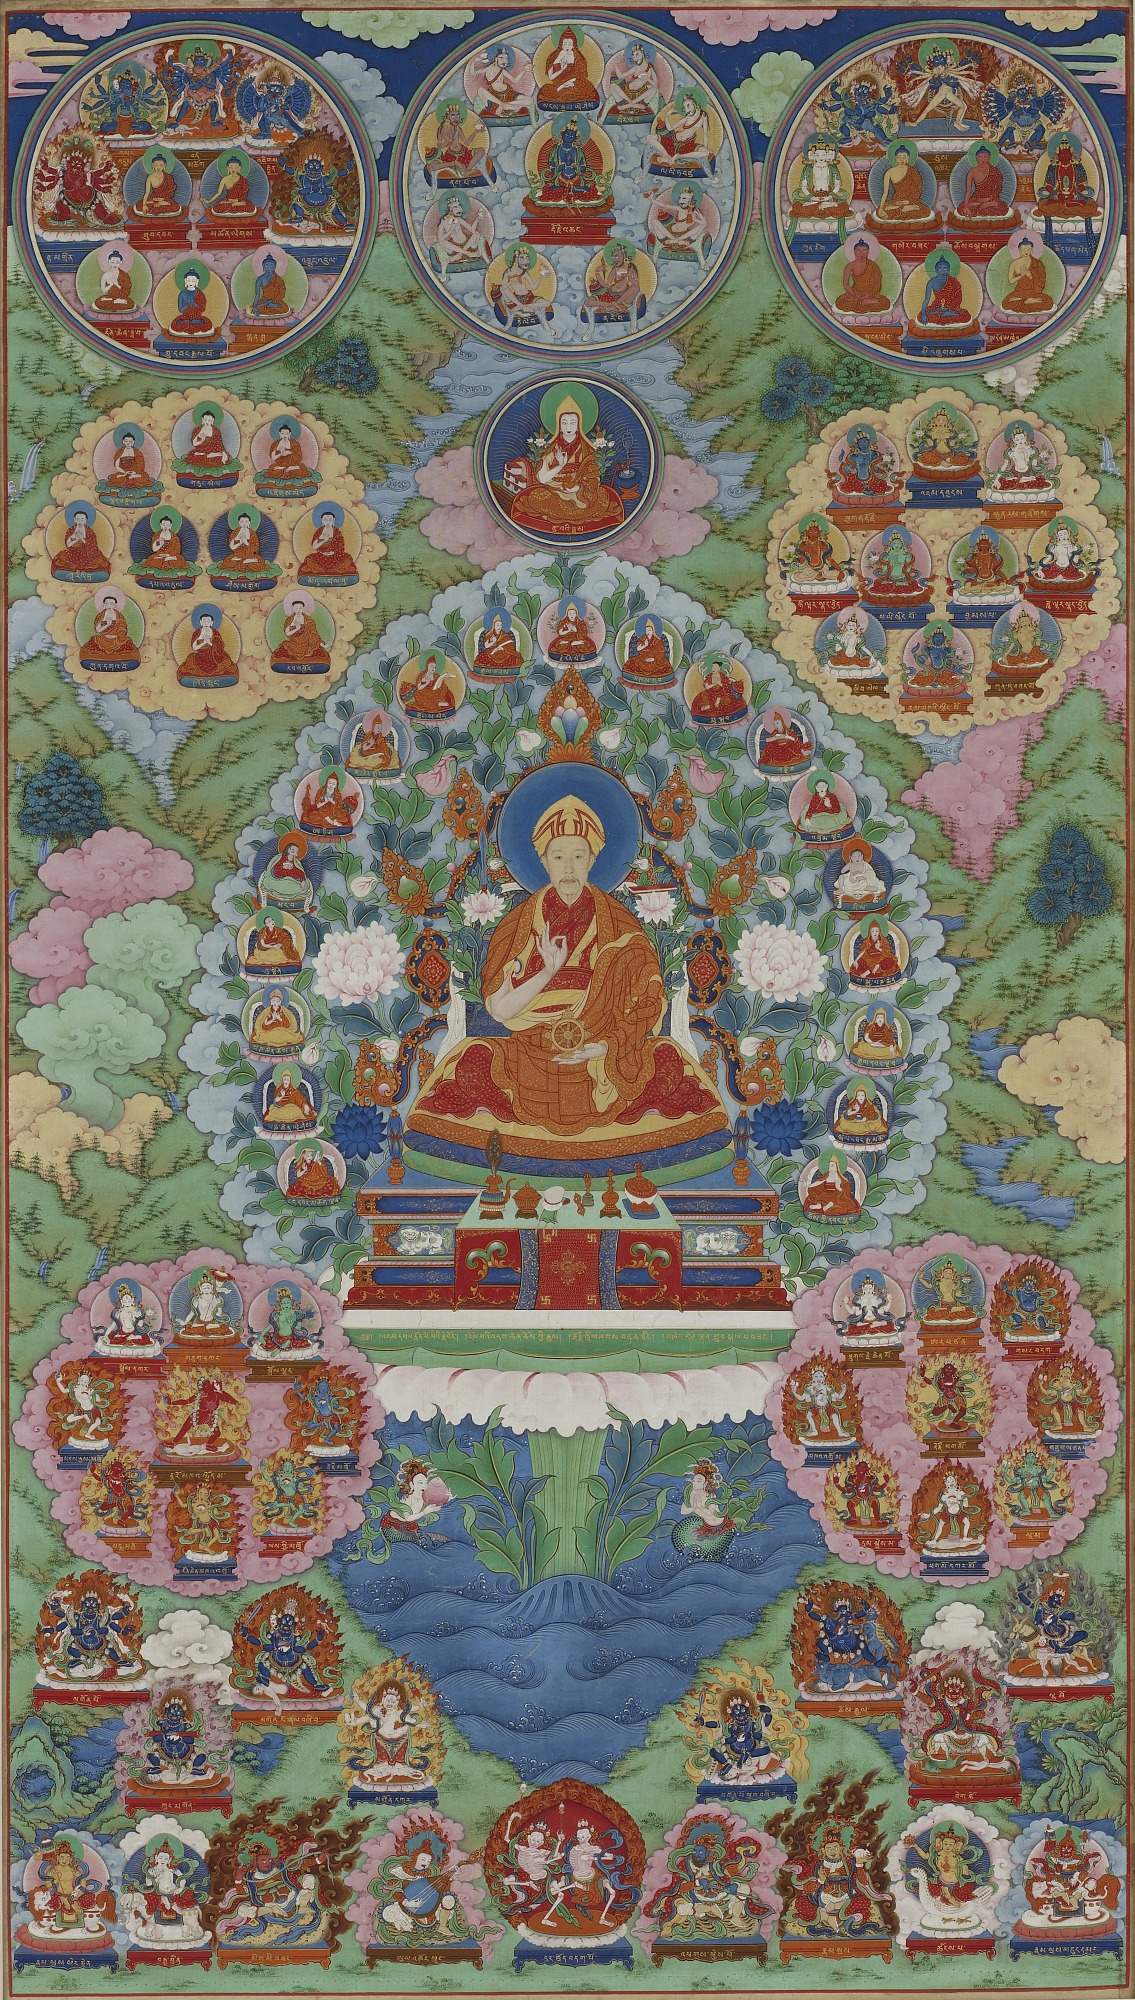 : The Qianlong Emperor as Manjusri, the Bodhisattva of Wisdom